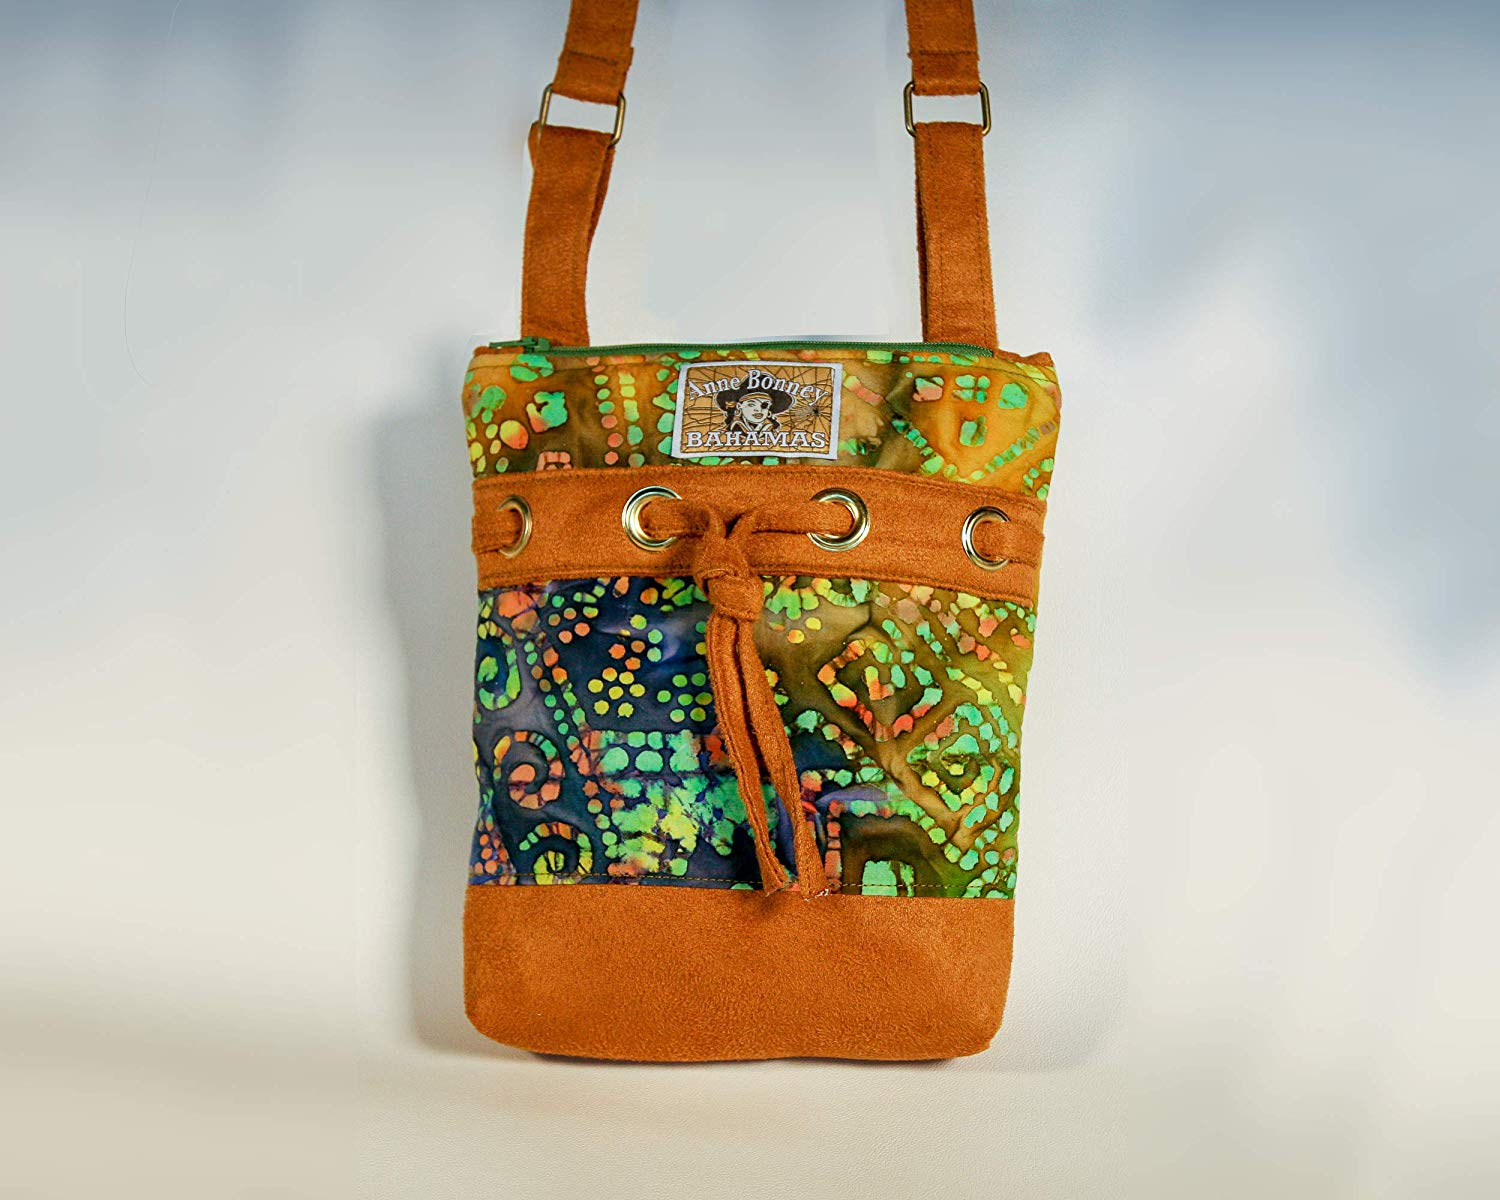 86c7f5bcaf42 Get Quotations · Batik cross body bag with drawstring decor and two zipper  pockets